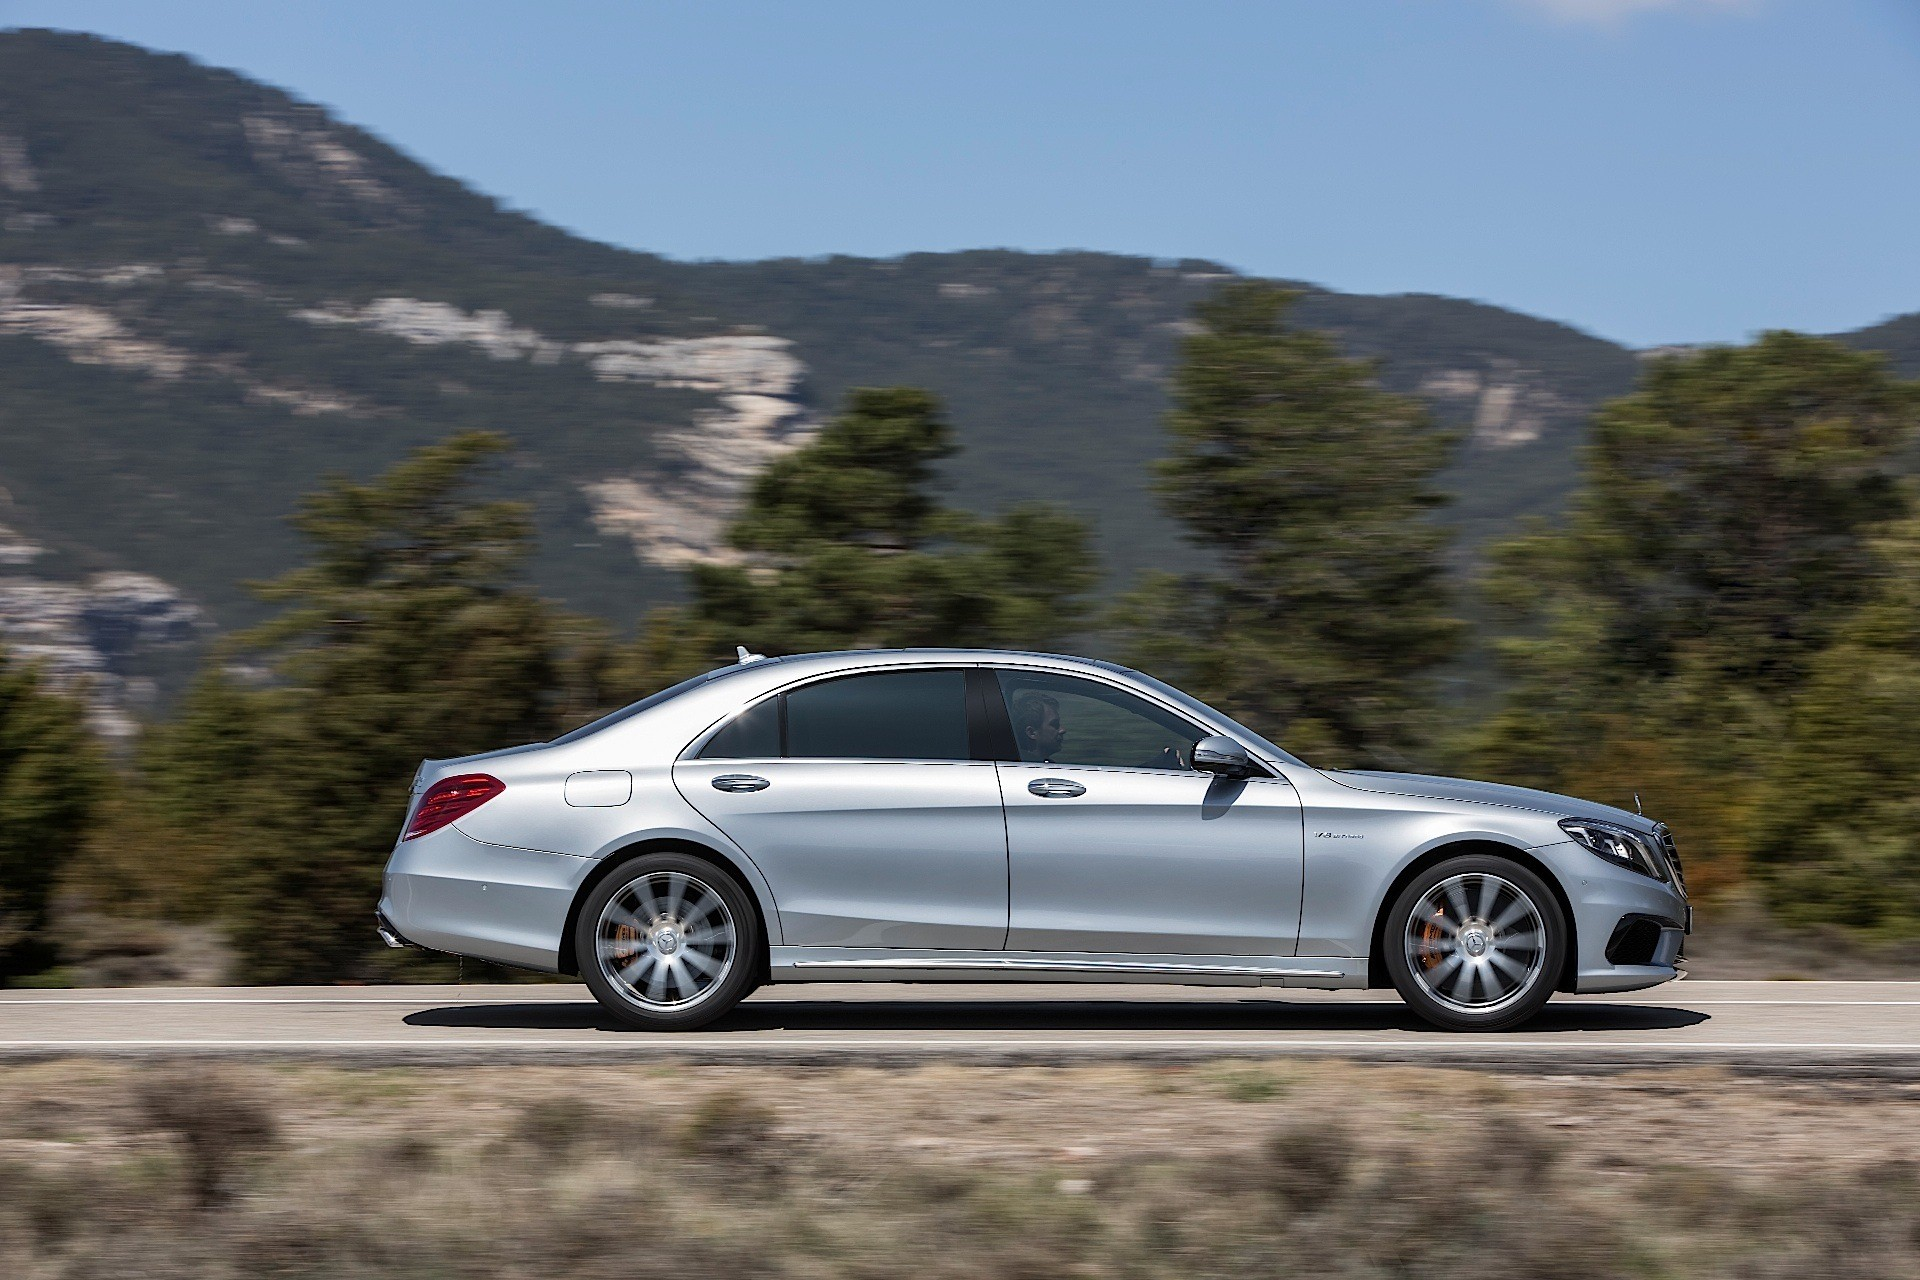 2014 Mercedes Benz S Class clocks 1,00,000 sales in 1 year